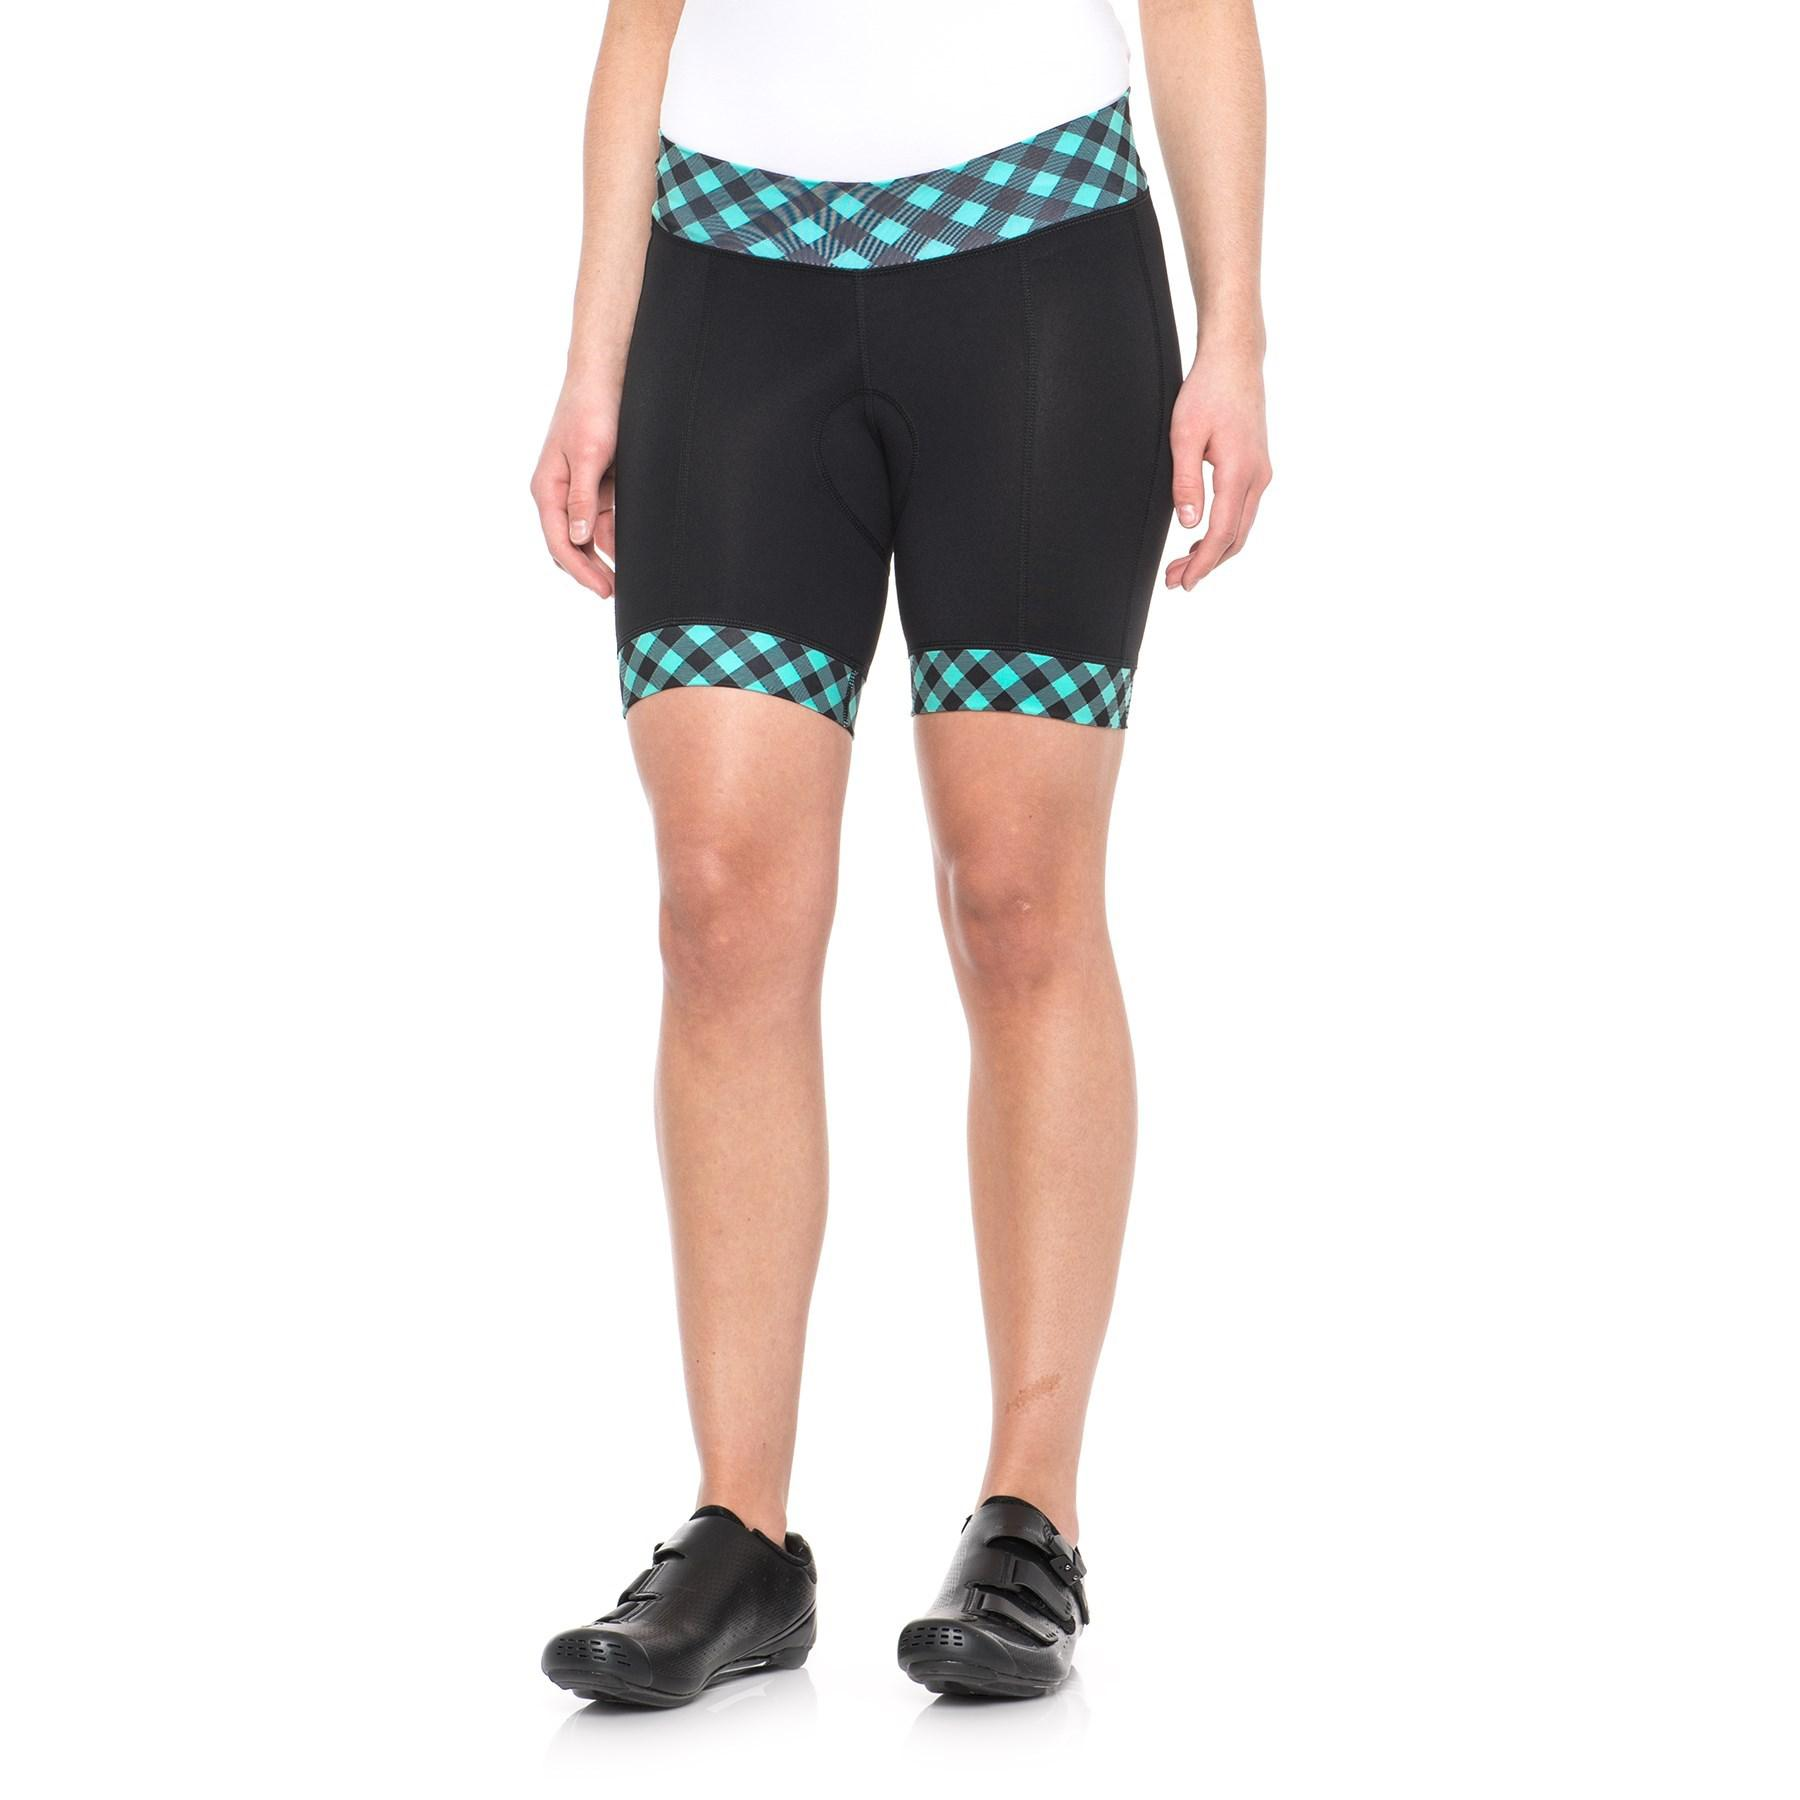 Lyst - shebeest Triple S Ultimo Cycling Shorts (for Women) in Blue 1ae6e9539